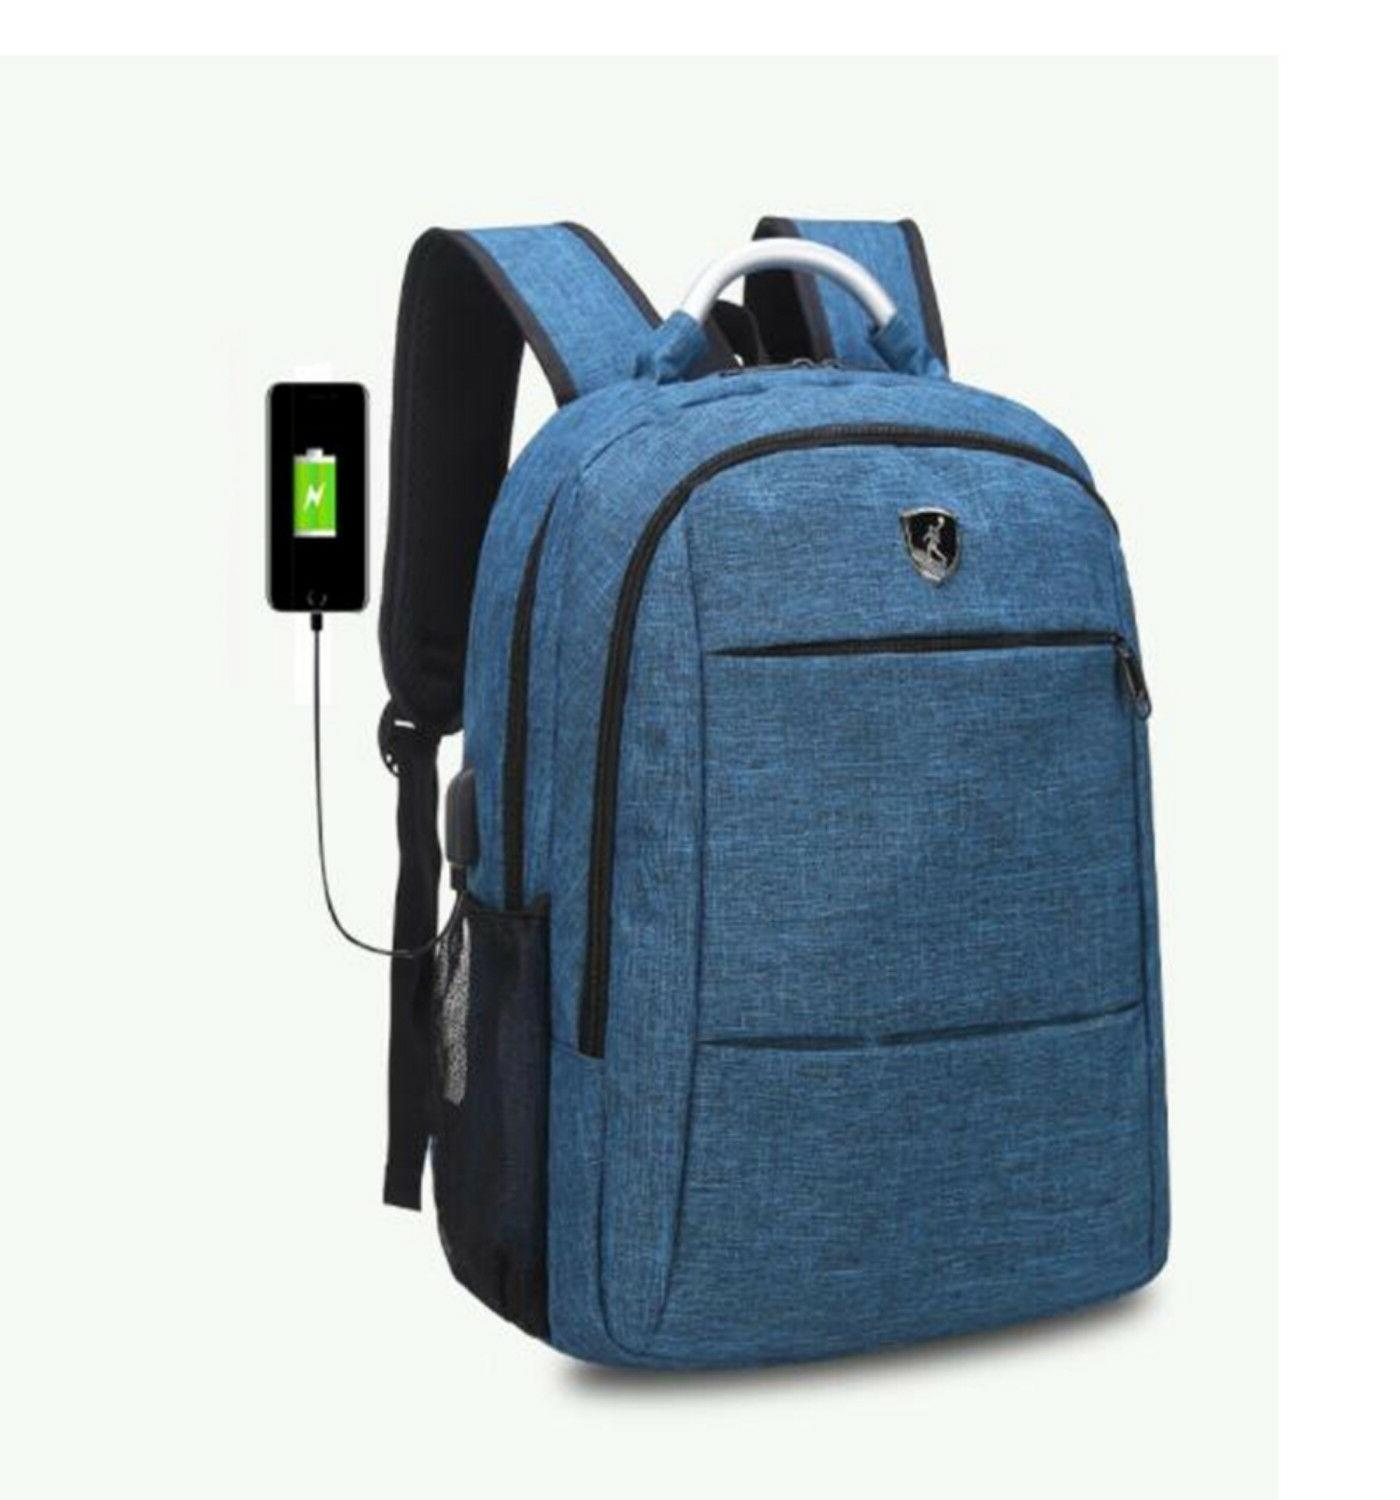 Anti-theft backpack With USB Charging Port, Laptop,Notebook,